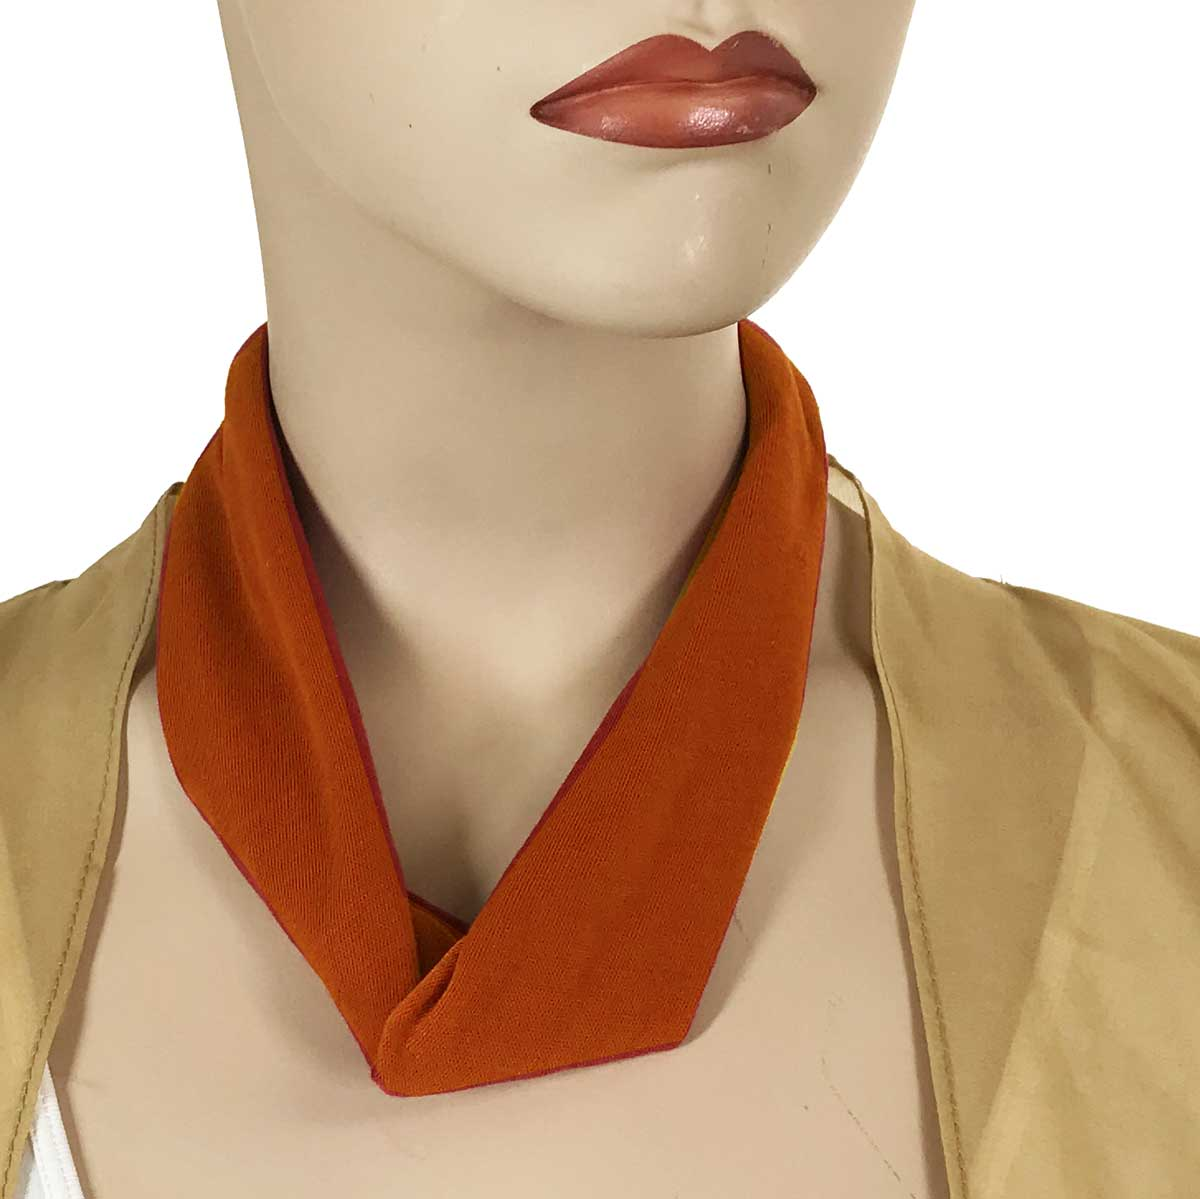 Jersey Knit Necklace with Magnetic Clasp - #036 Paprika